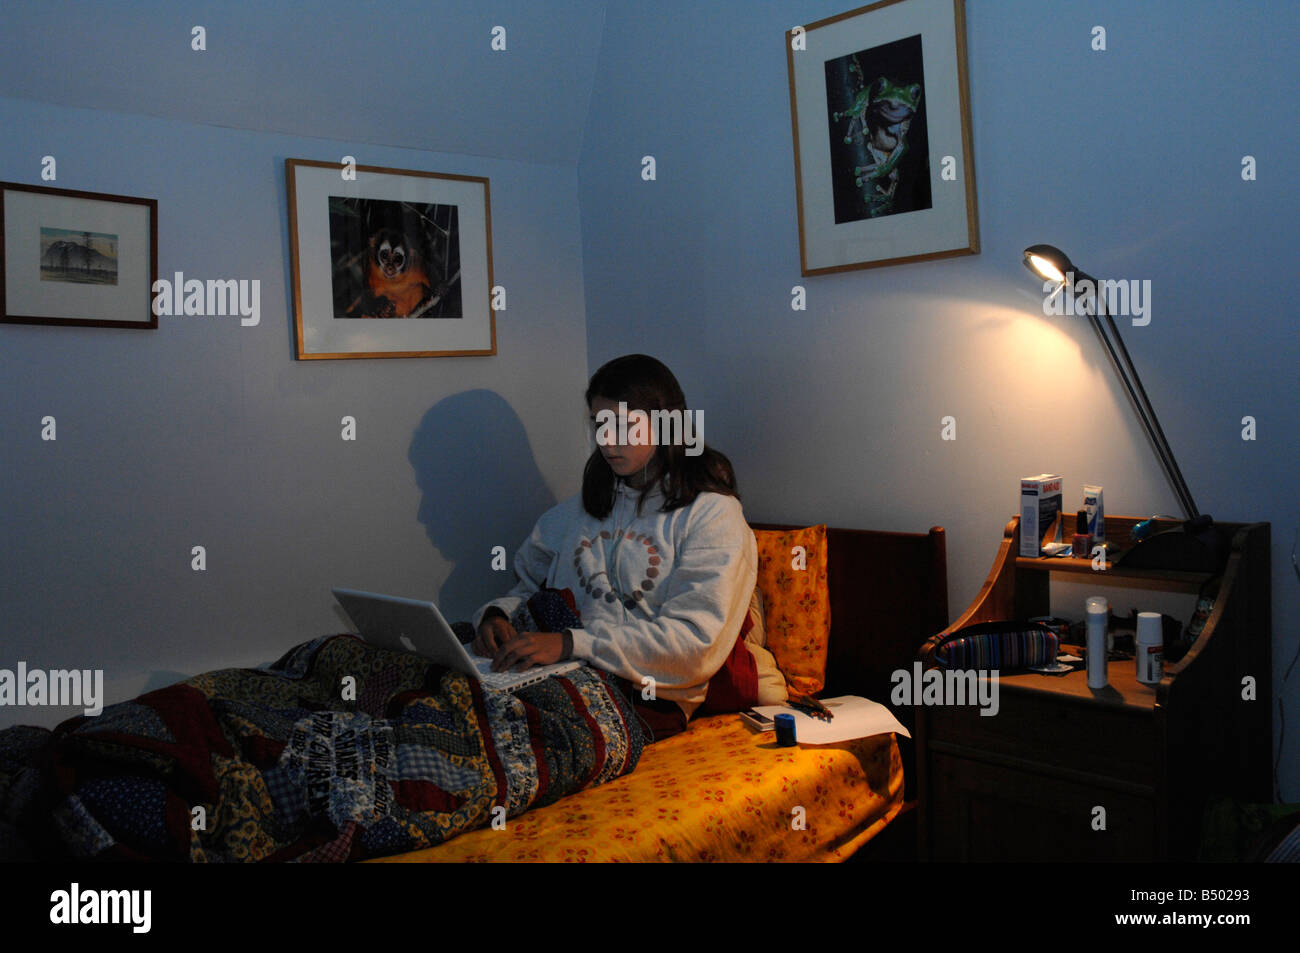 16 Year Old Girl Surfs The Web In Her Bedroom Stock Photo Alamy